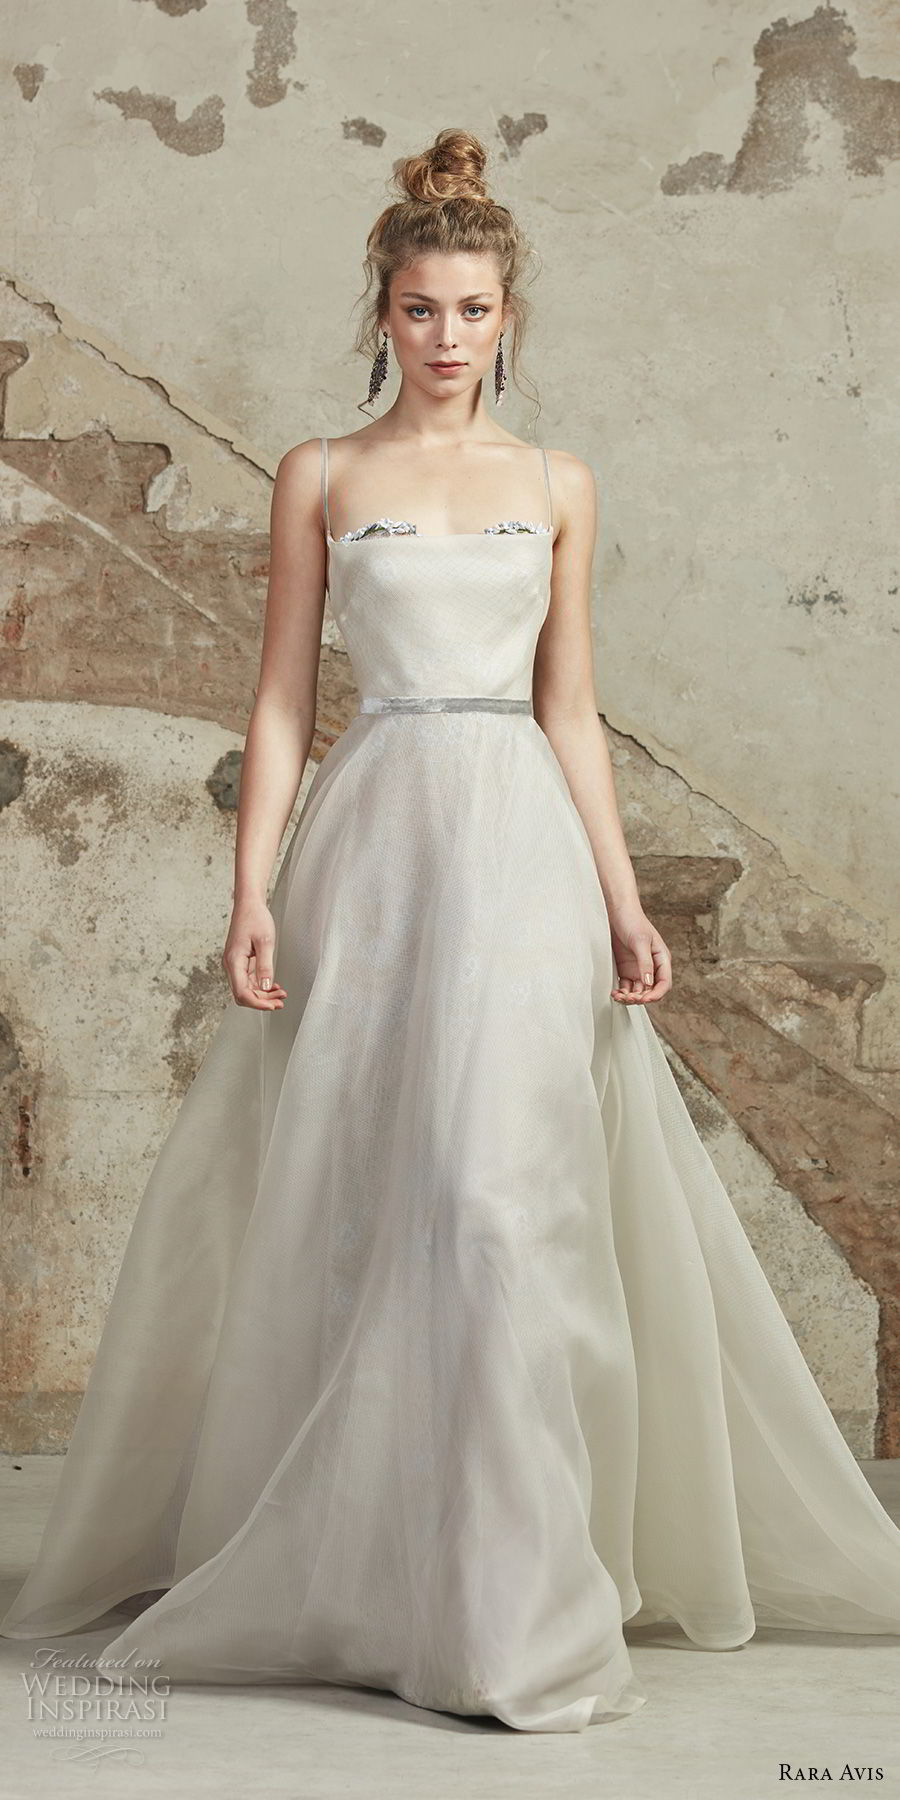 rara avis 2017 bridal spaghetti strap straight across necklne simple romantic a line wedding dress chapel train (8) mv